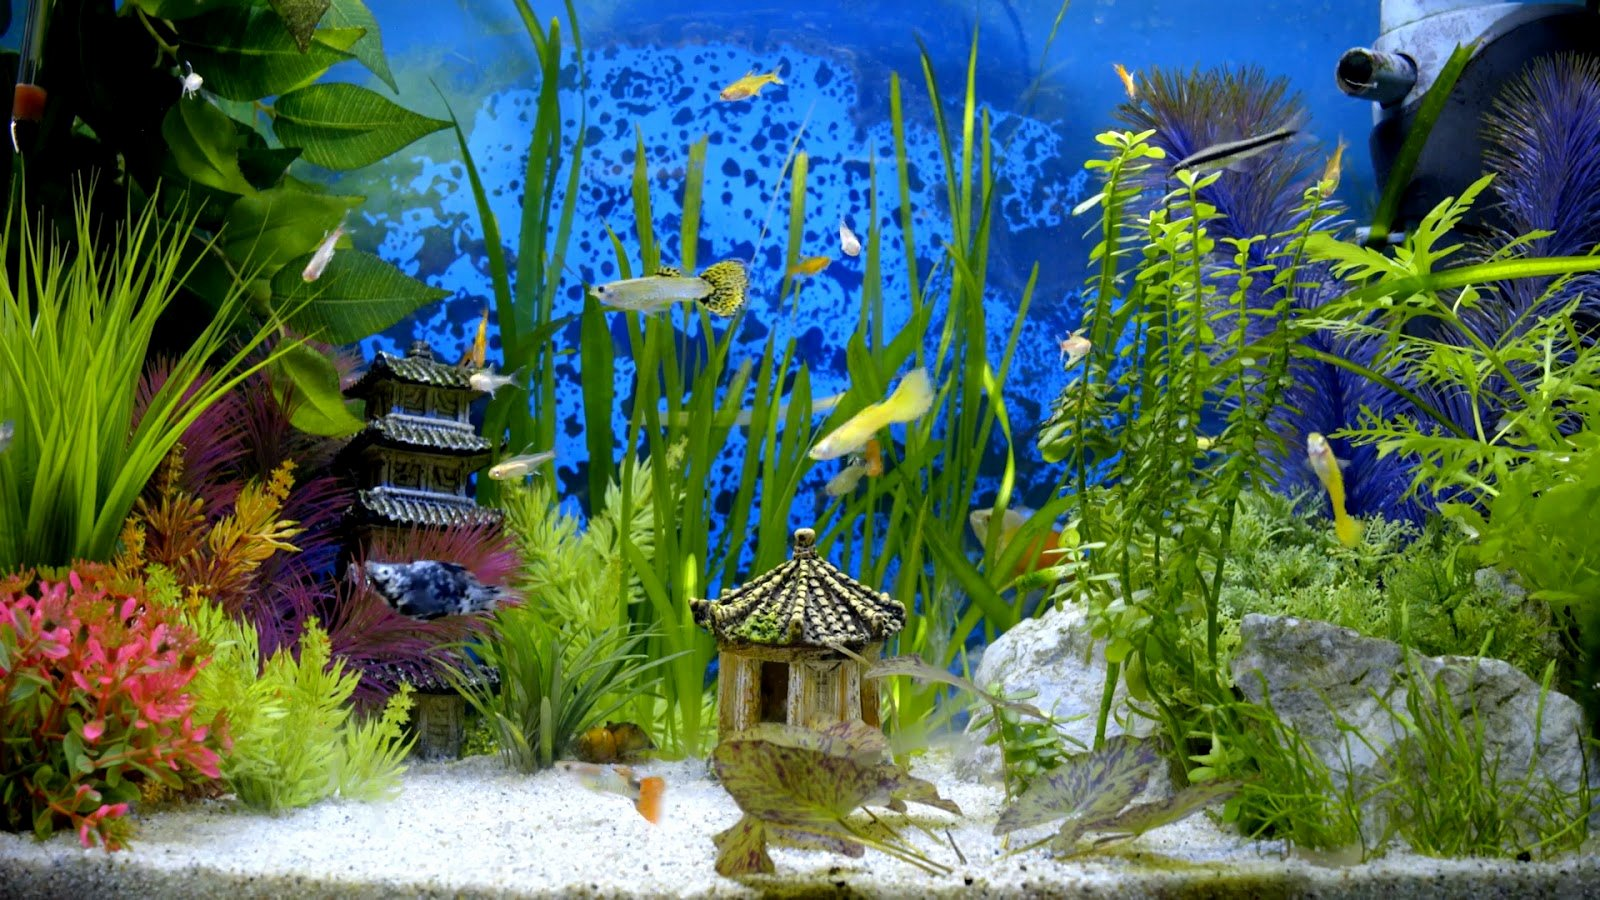 Fish Tank Background Pictures Lovely 4k Aquarium Video as Desktop Wallpaper